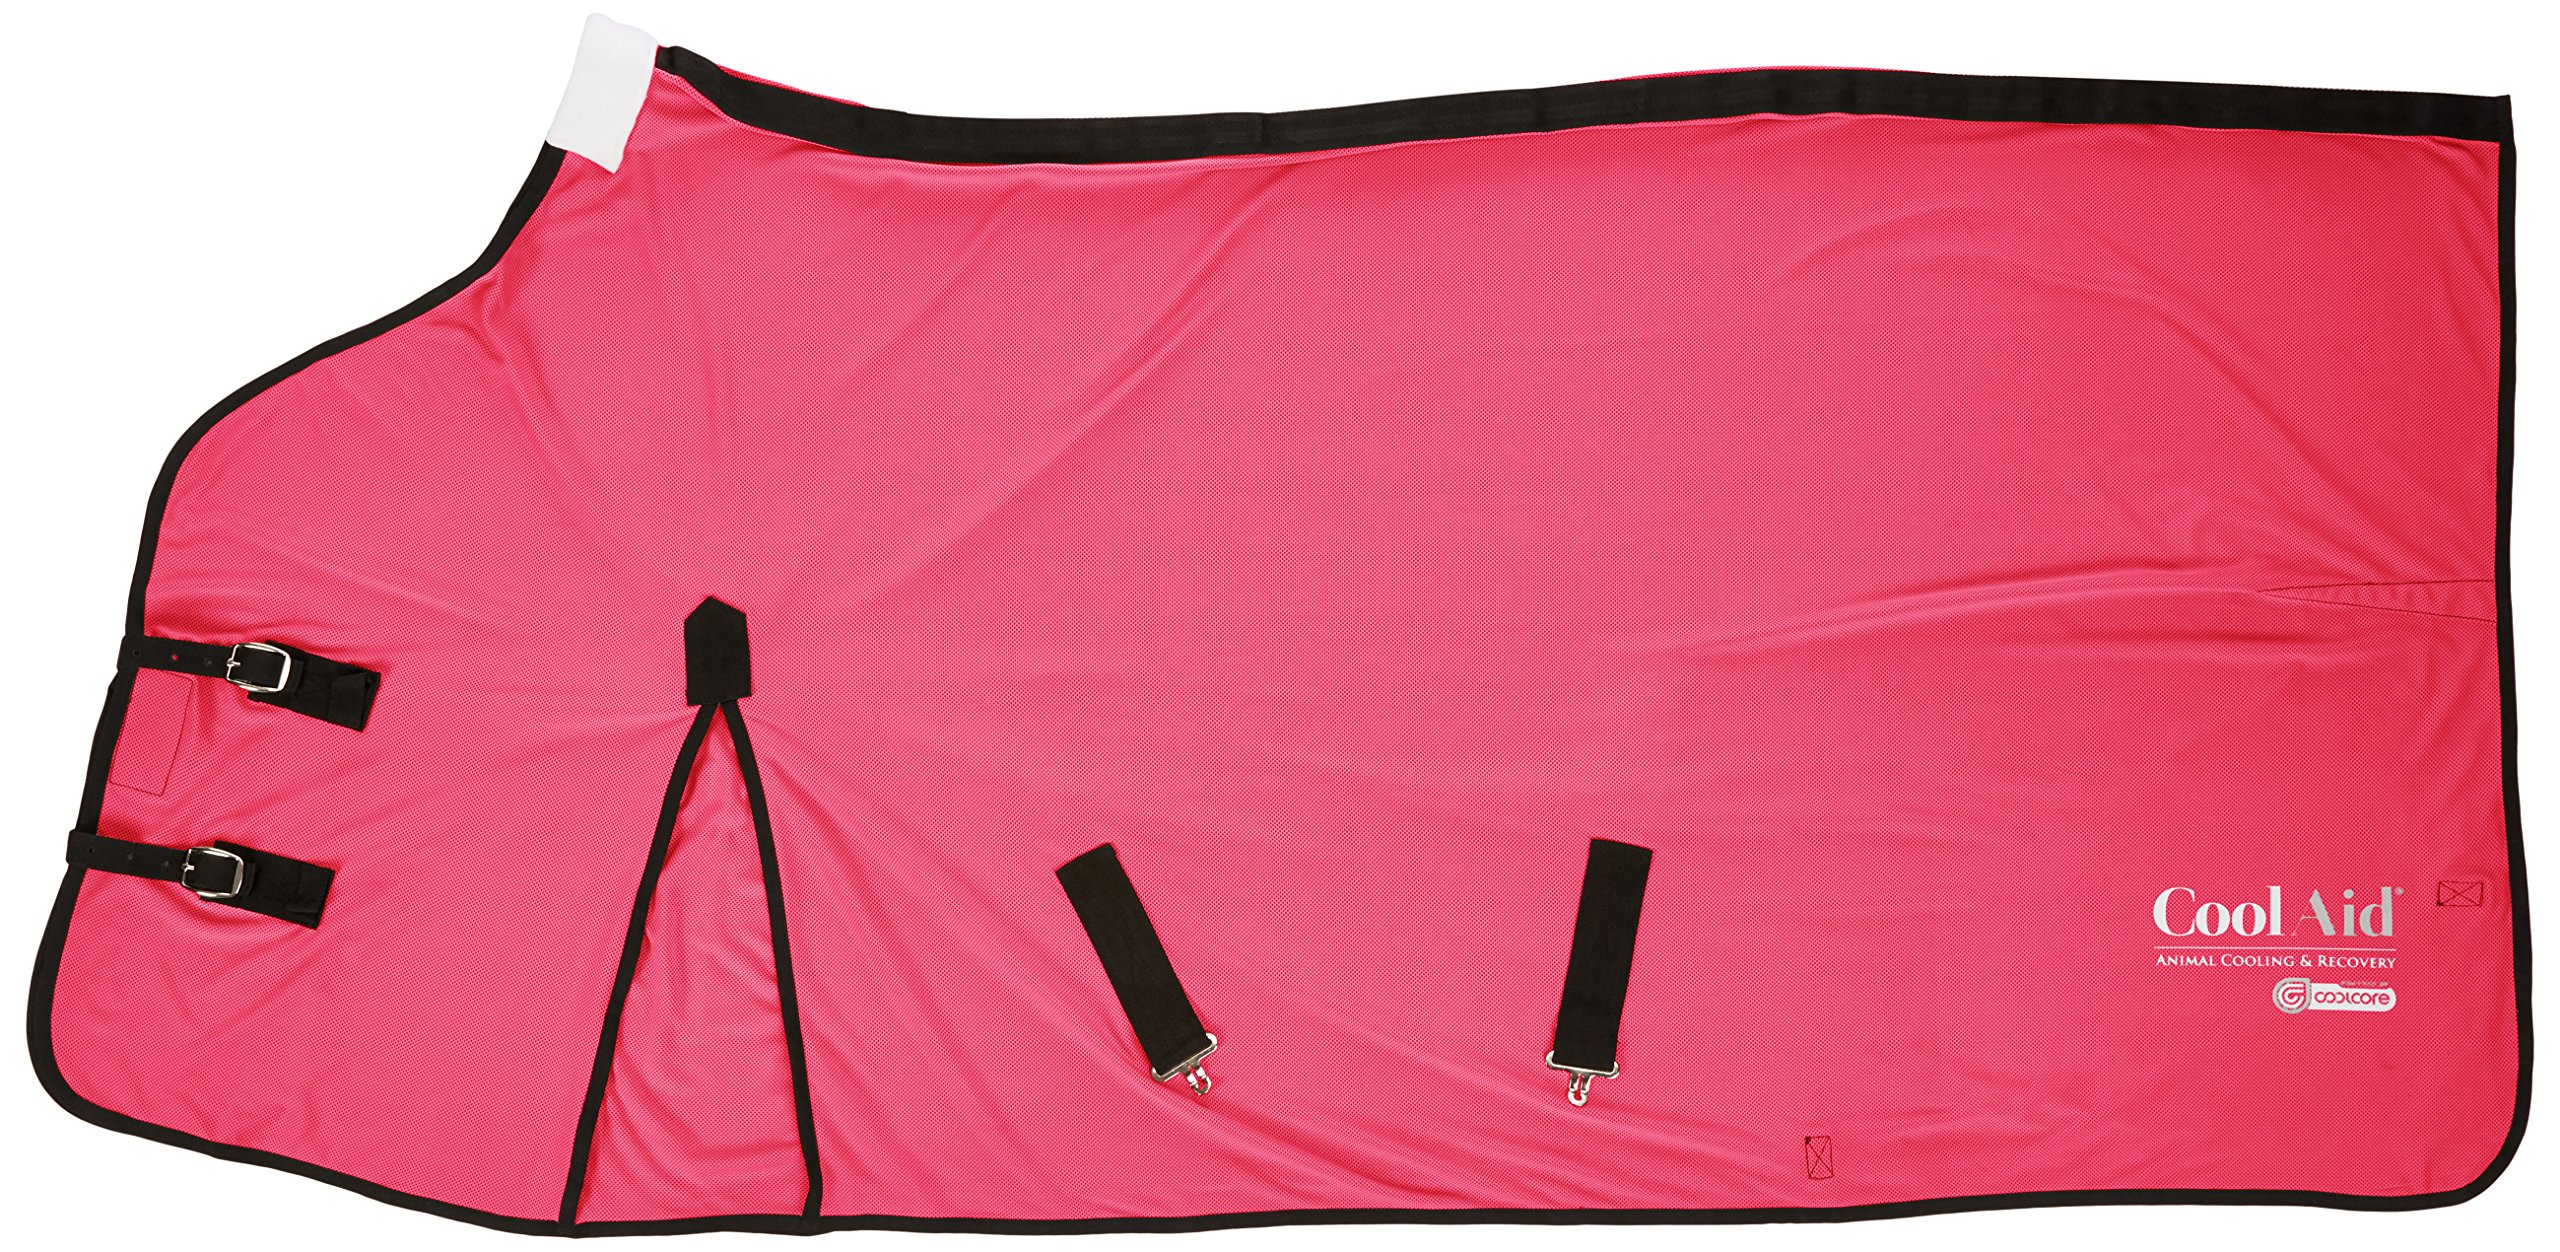 CoolAid Animal Cooling and Recovery Equine Cooling Blanket, Pink, Small